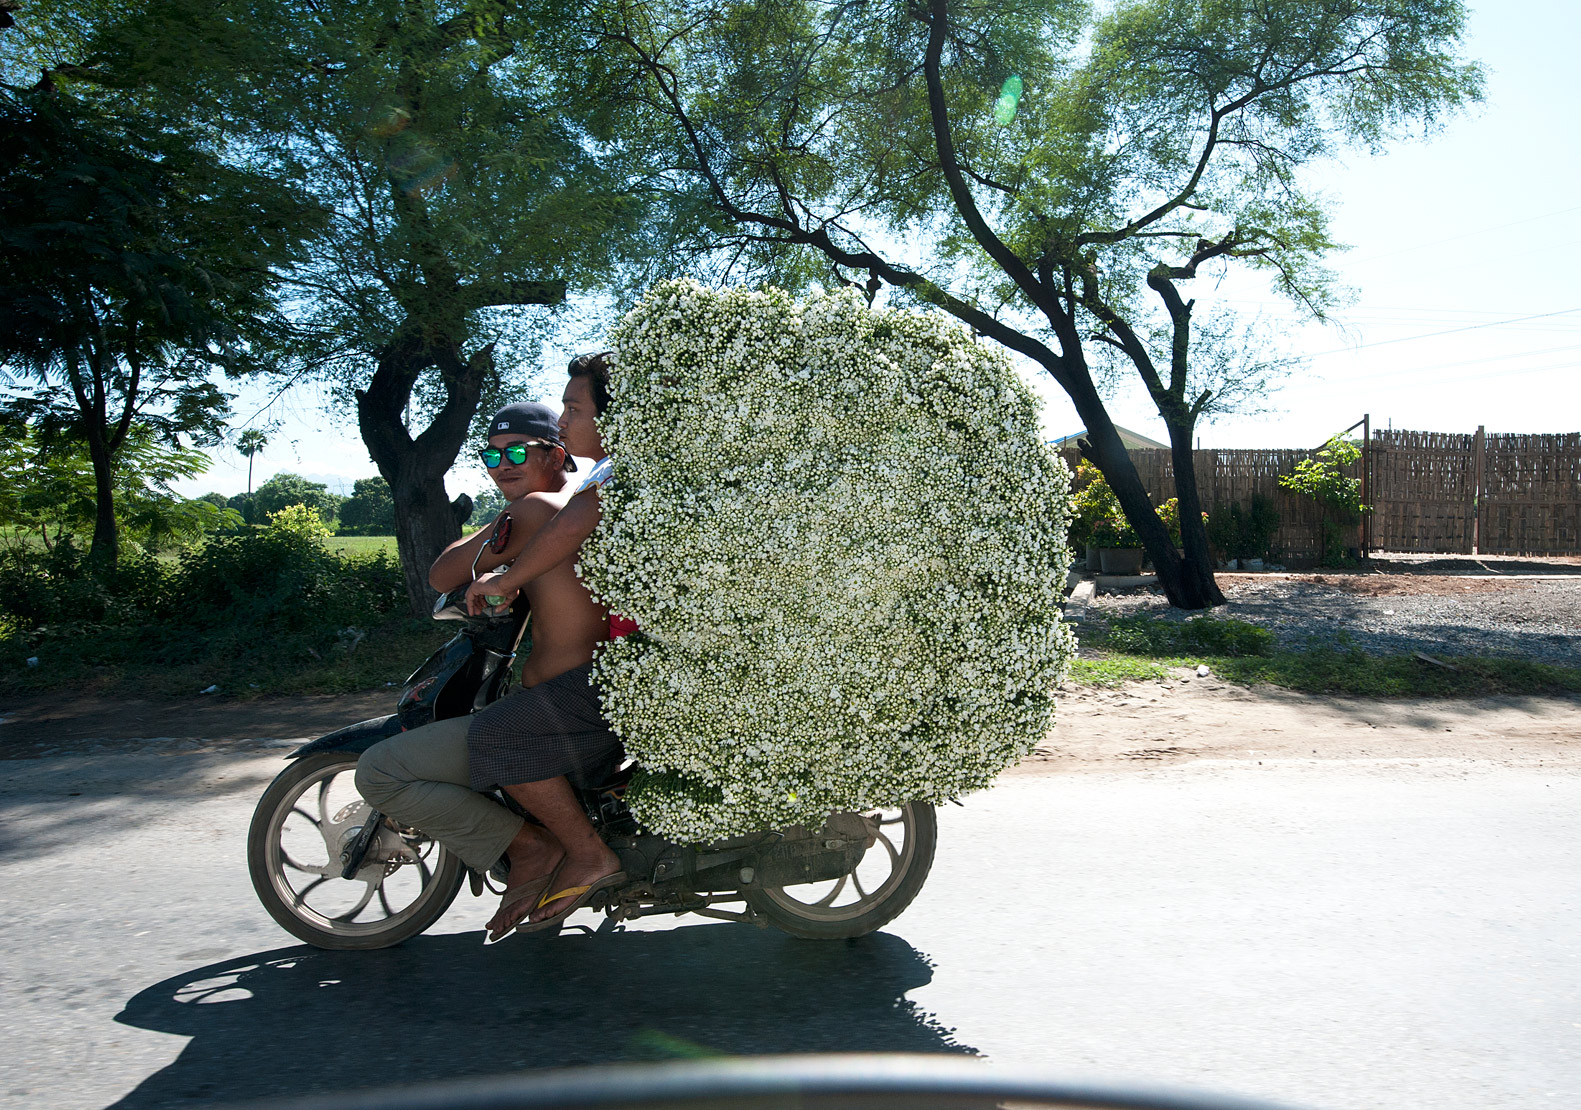 Two young men on a motorbike carrying a very large load of bunched flowers for sale in Ptin Oo Lwyn town, Mandalay, Myanmar.